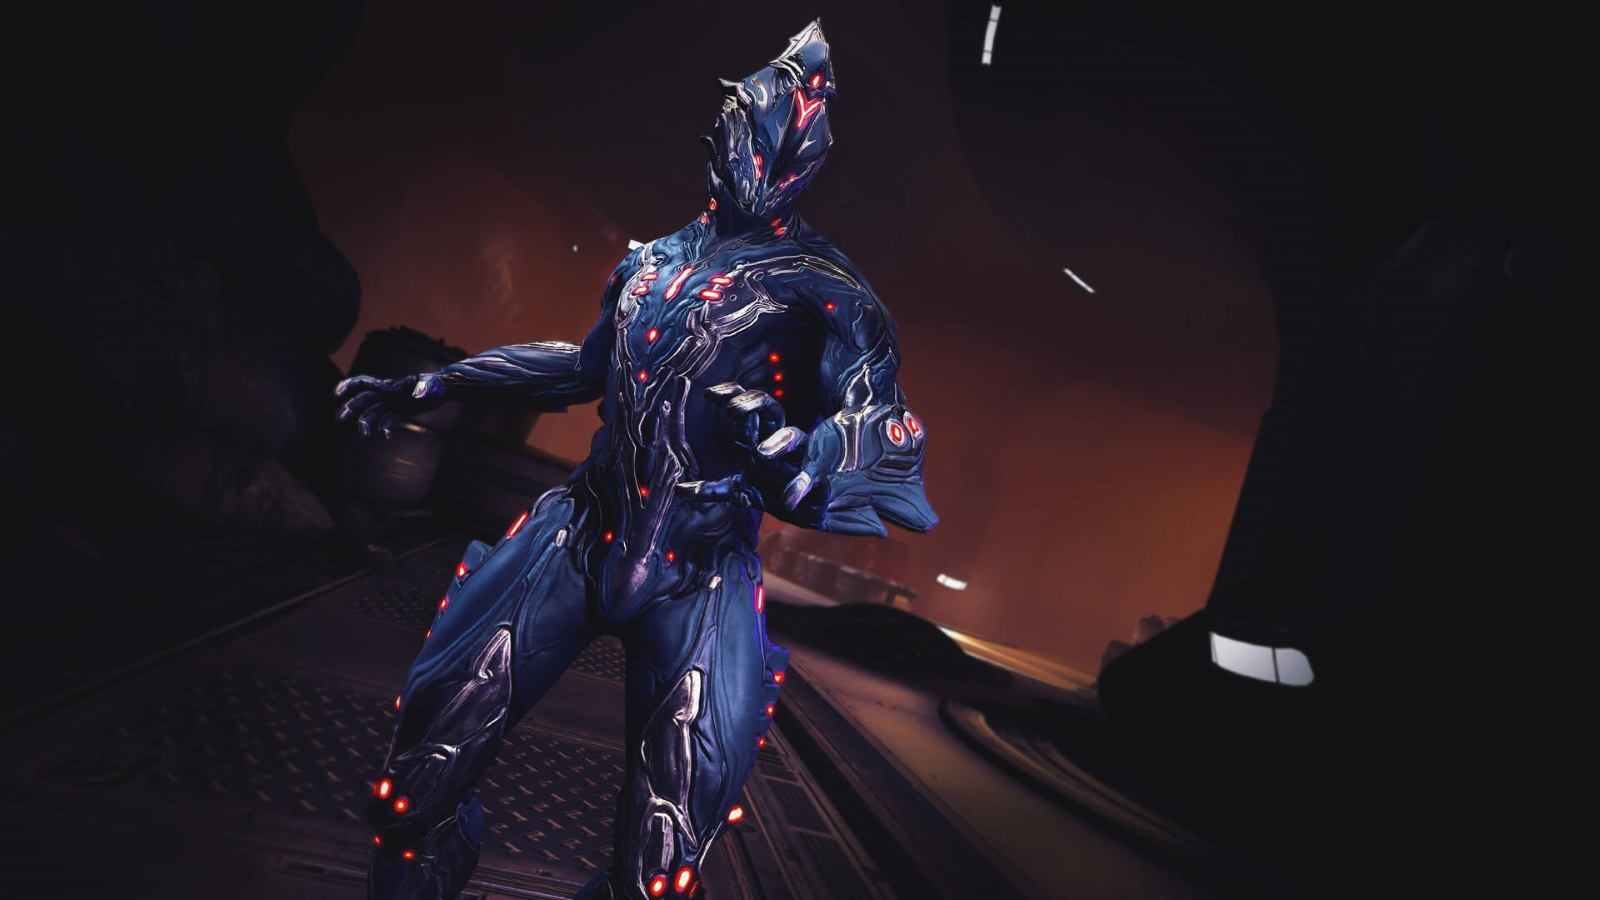 warframe giveaway 2019 warframe puts powerful anniversary gear up for grabs today 8847